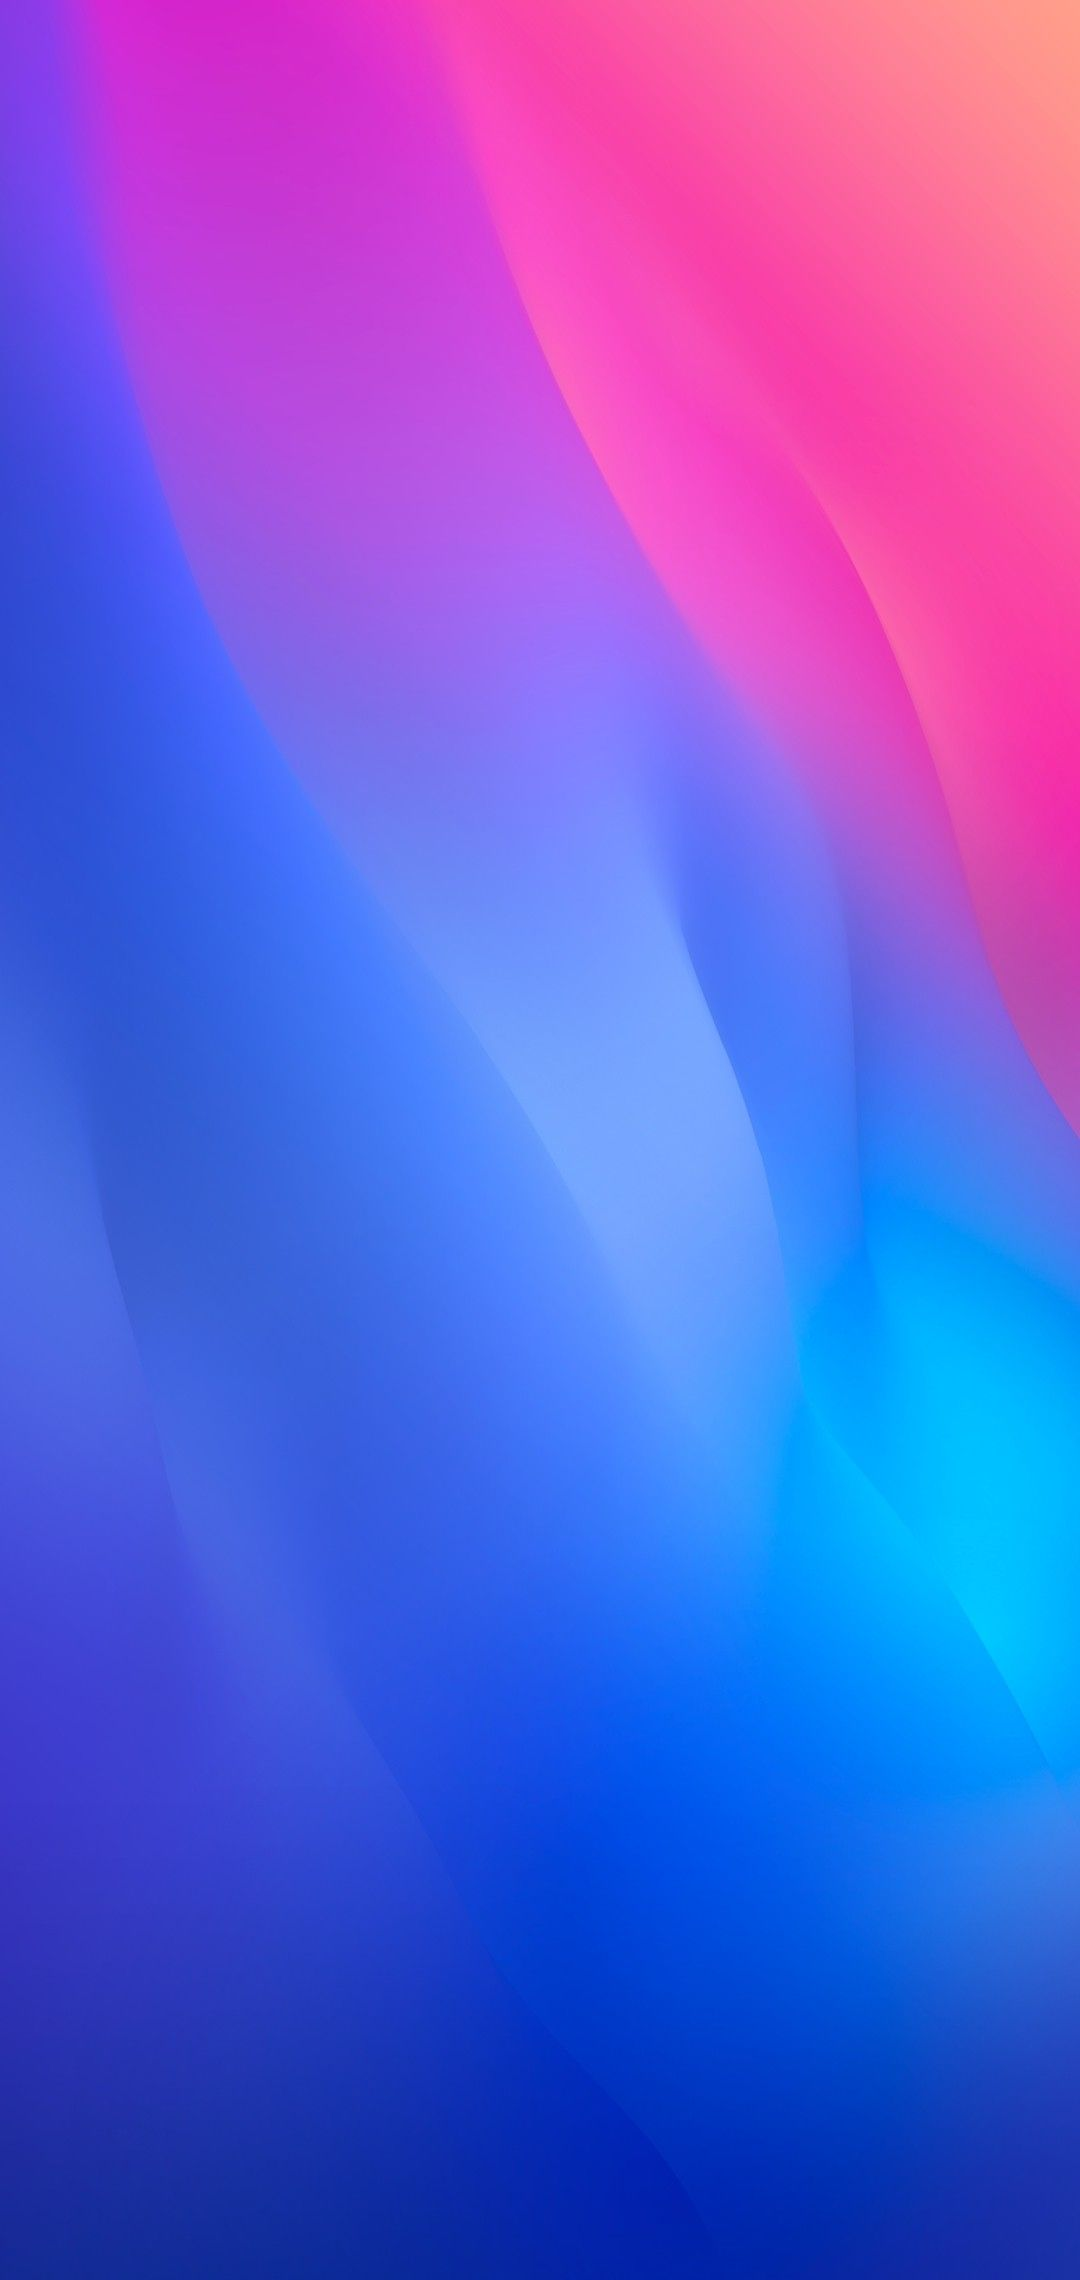 iPhone 12 Wallpapers on WallpaperDog